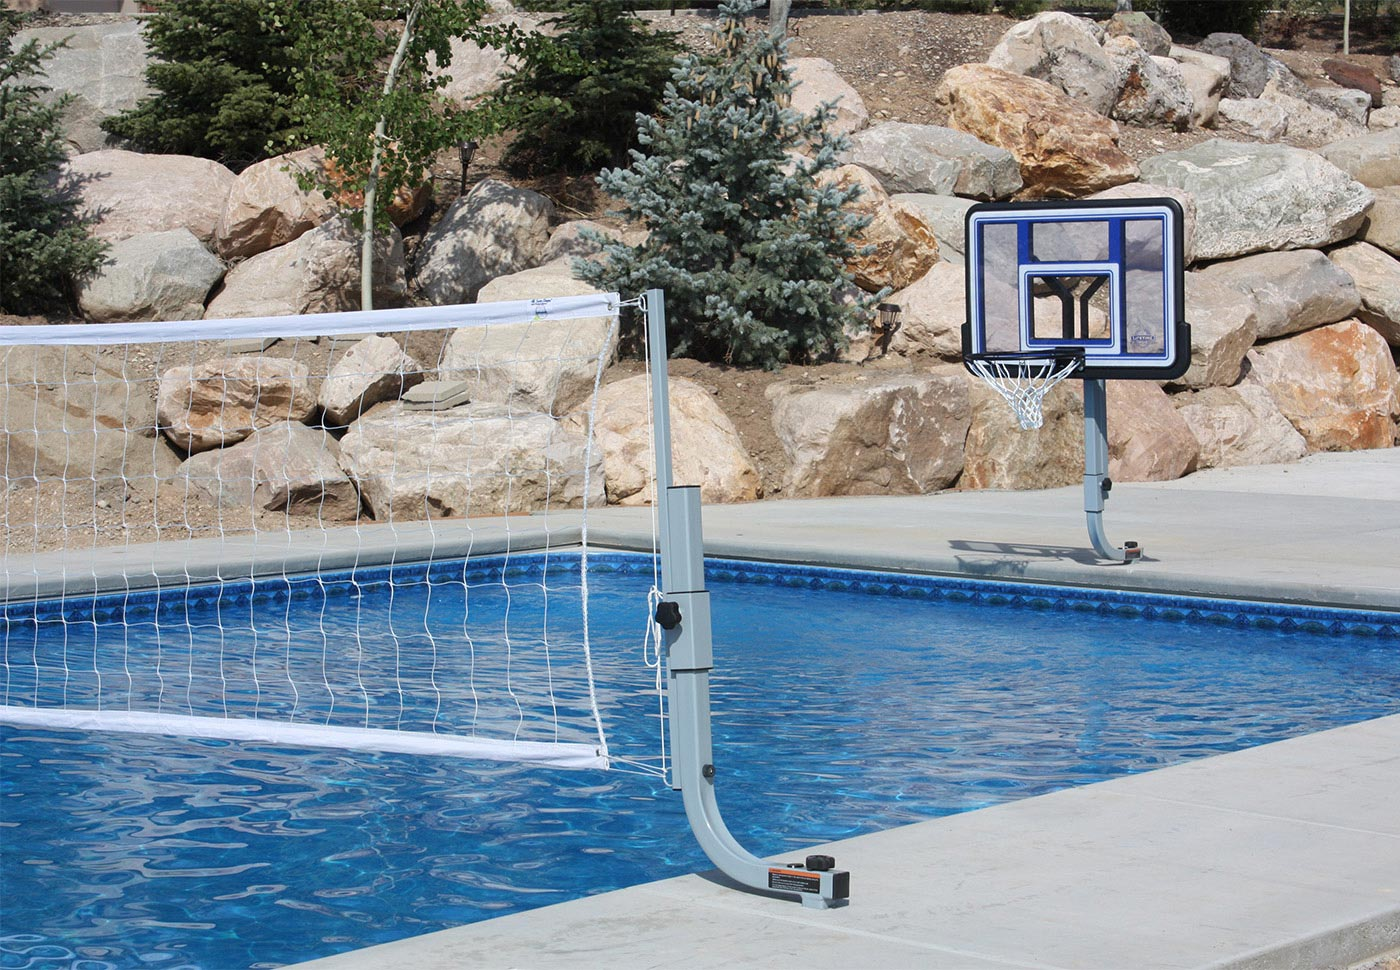 BASKET VOLLEY COMBO - With In-Deck Anchor System BOXES  B, B, C, D, E, G, G - SwimShape